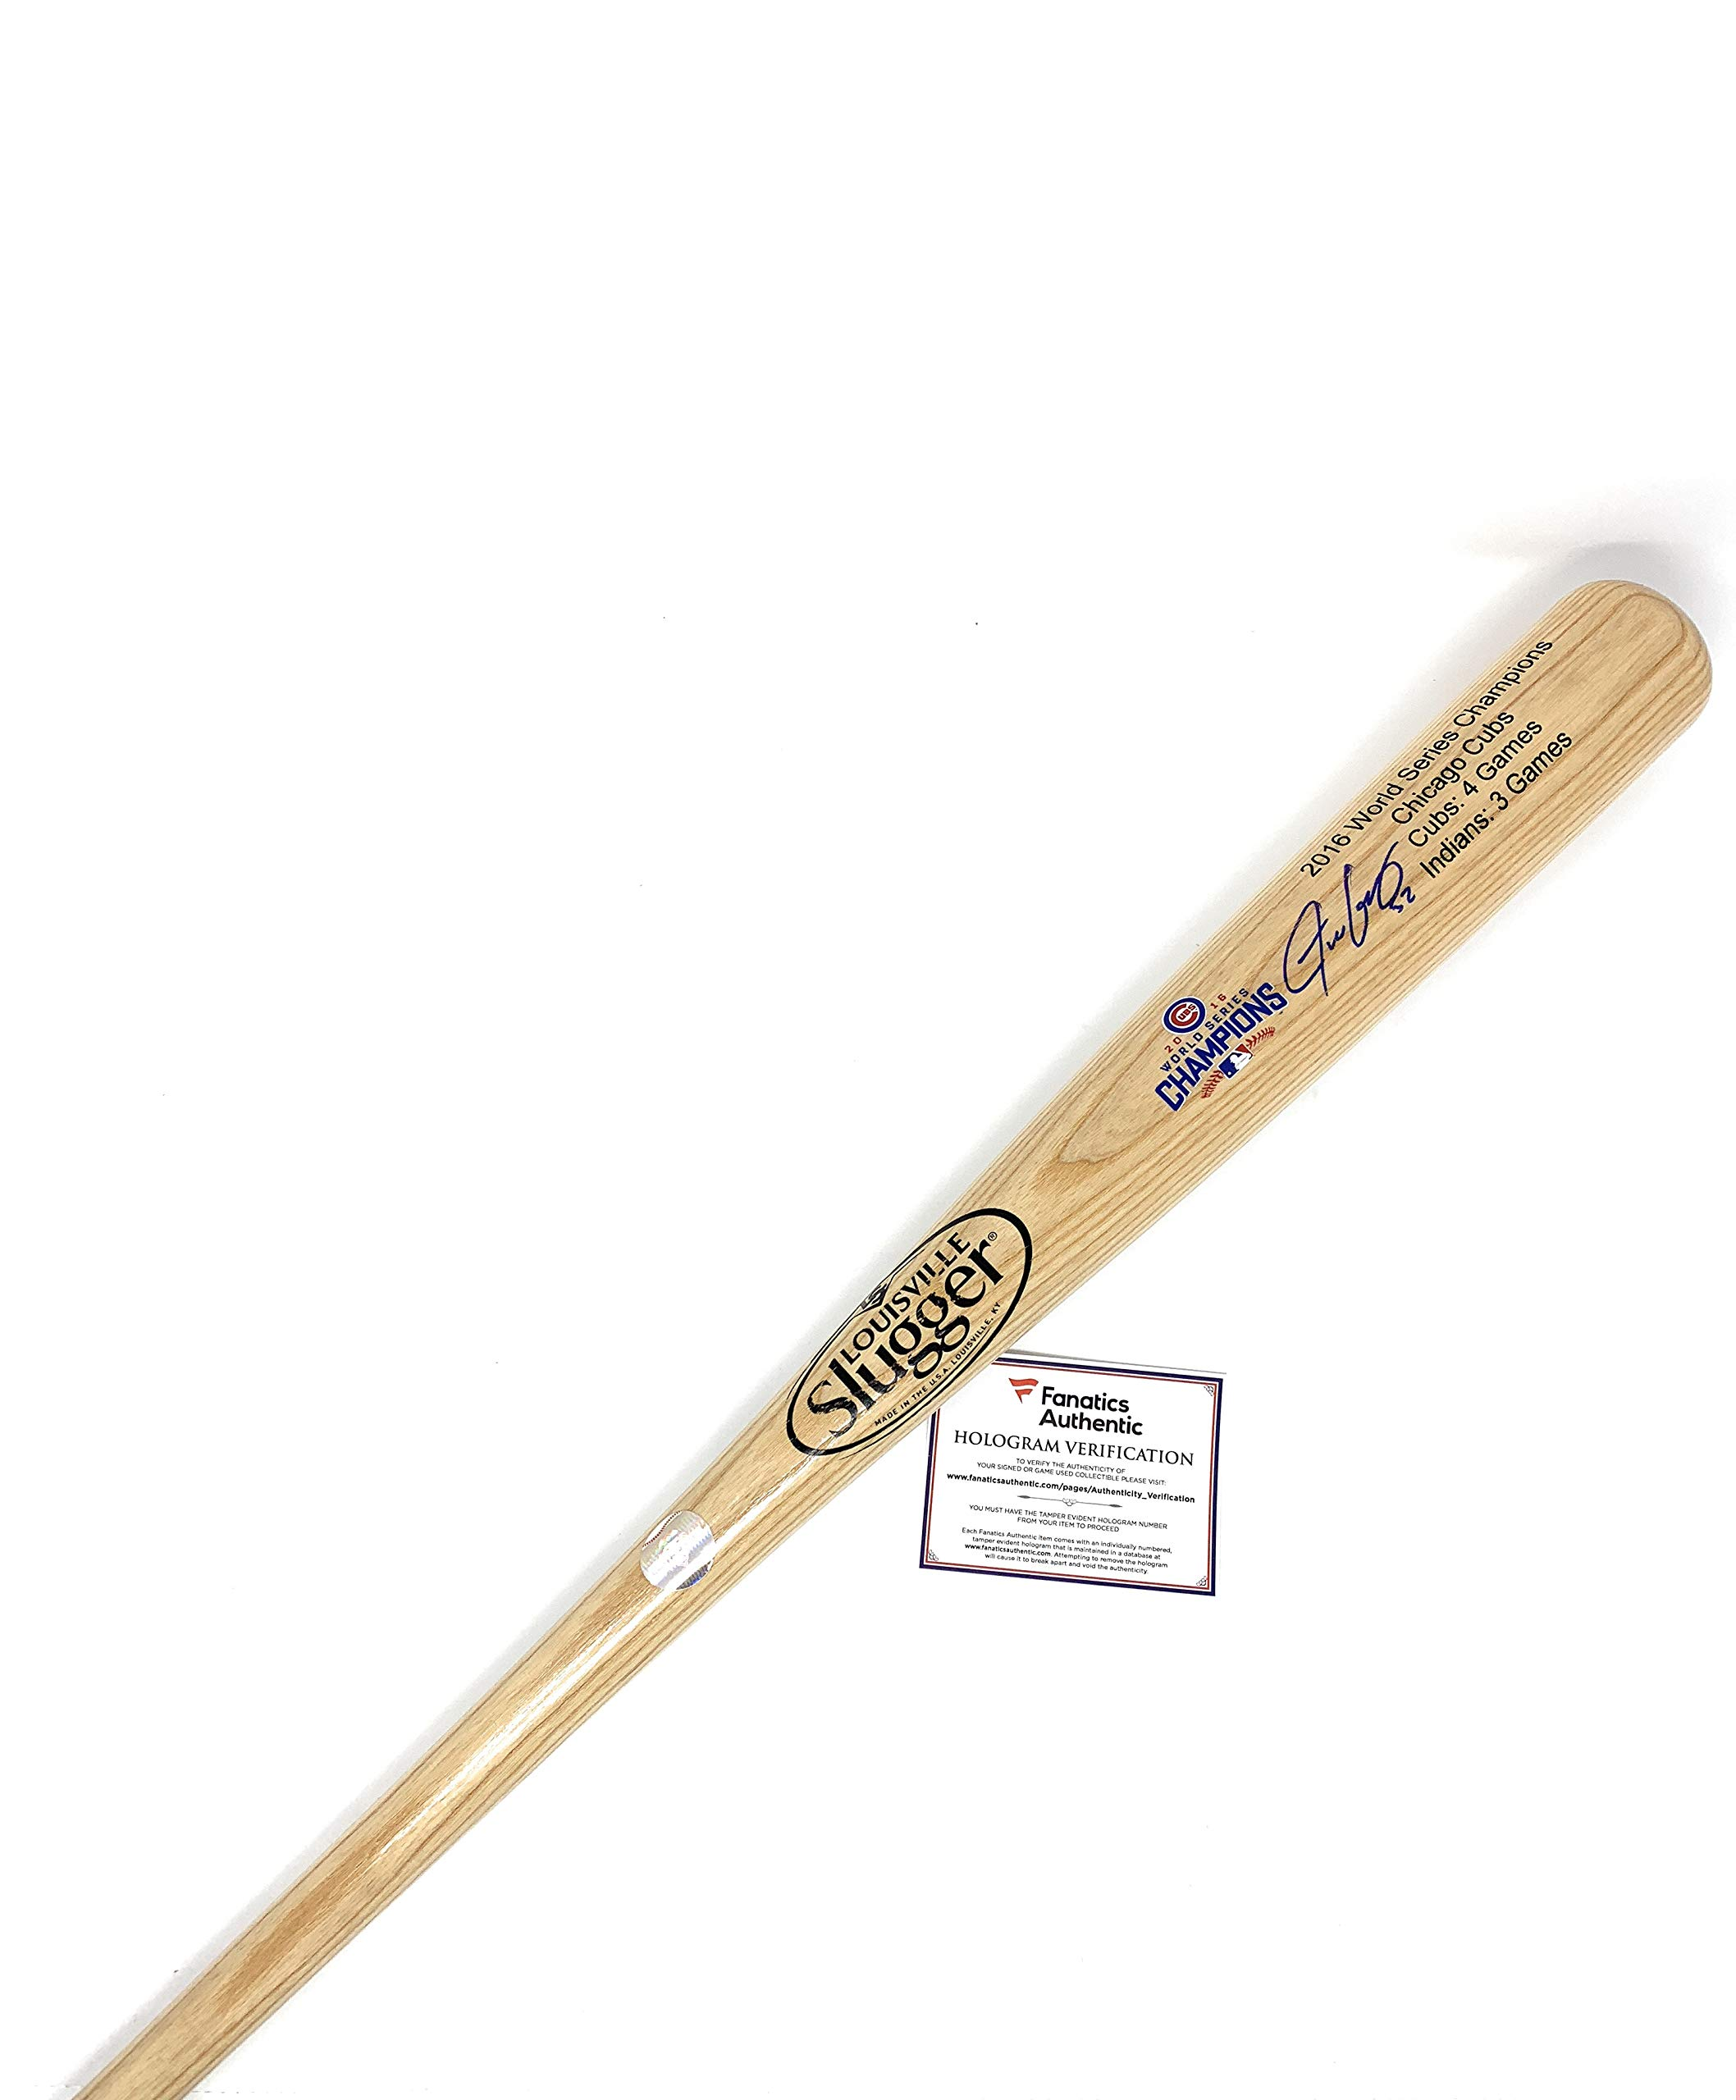 Justin Grimm Chicago Cubs Signed Autograph Baseball Bat Limited Edition World Series Blonde Fanatics Authentic Certified